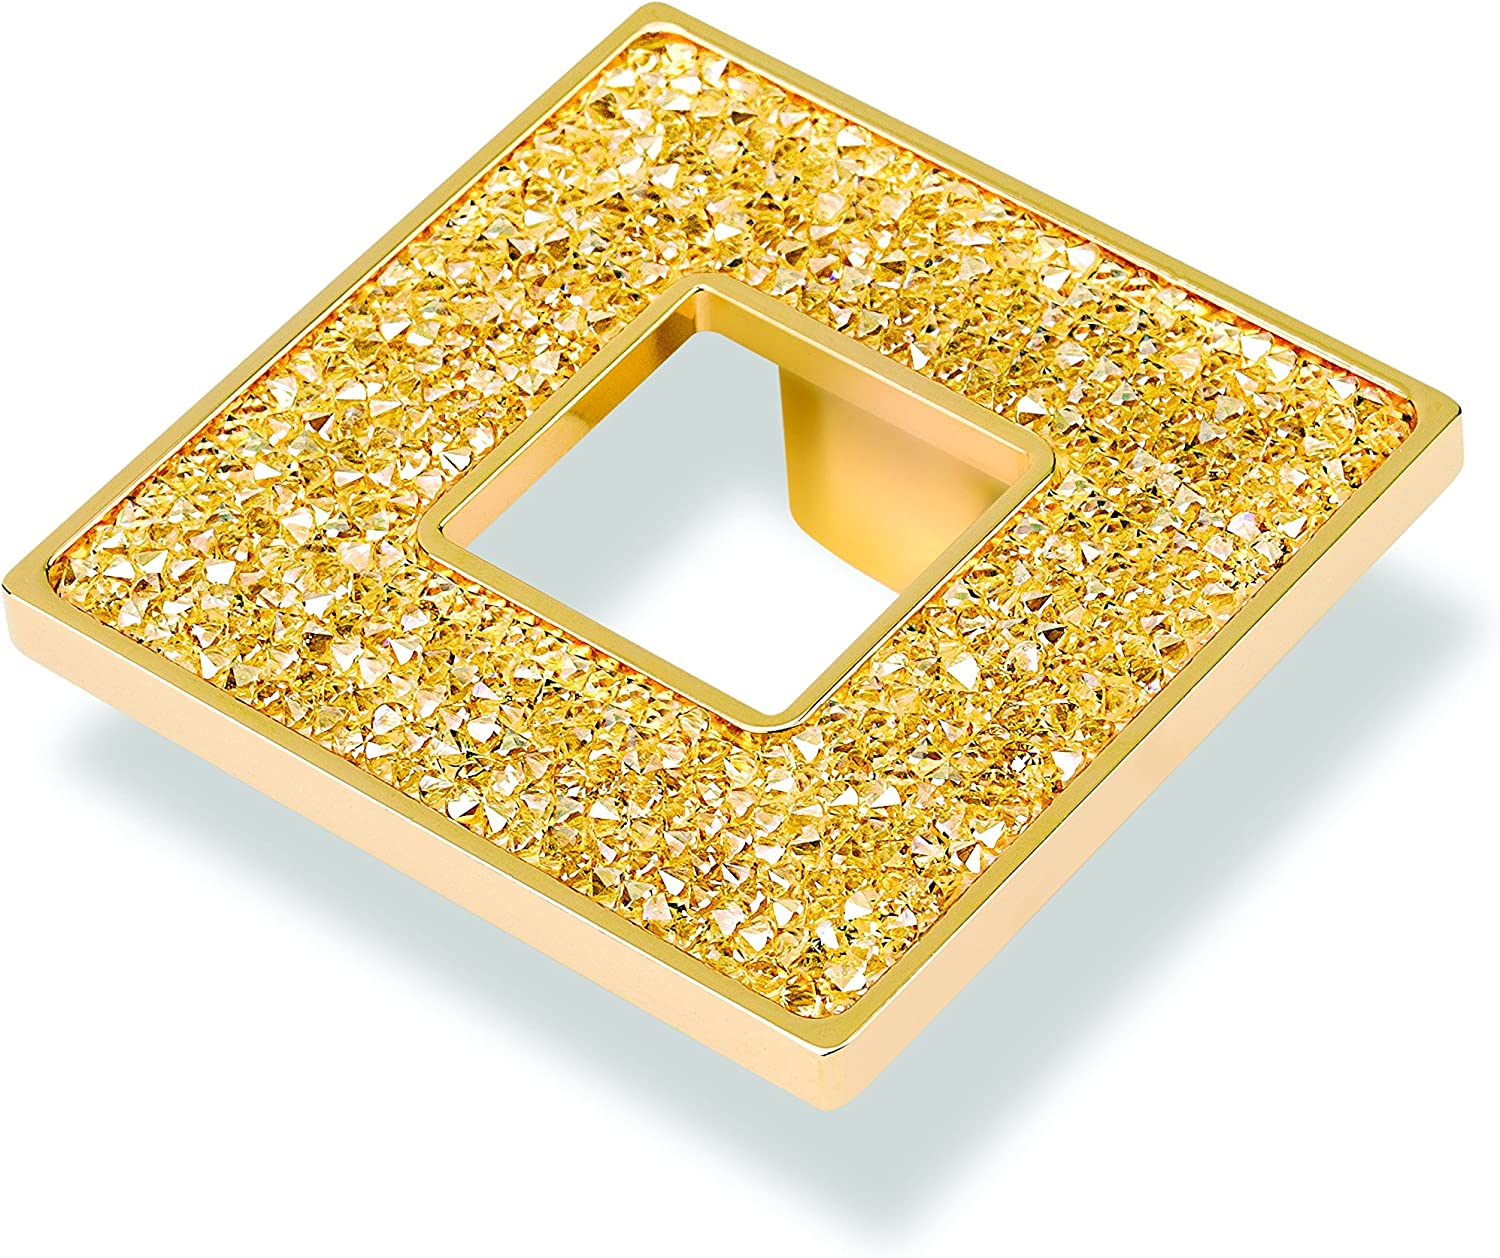 TOPEX HARDWARE P2084.33ORZSWA TOPEX HARDWARE P2084.33ORZSWA Round Knob with Hole and Swarovski Crystals Gold Gold Small Small